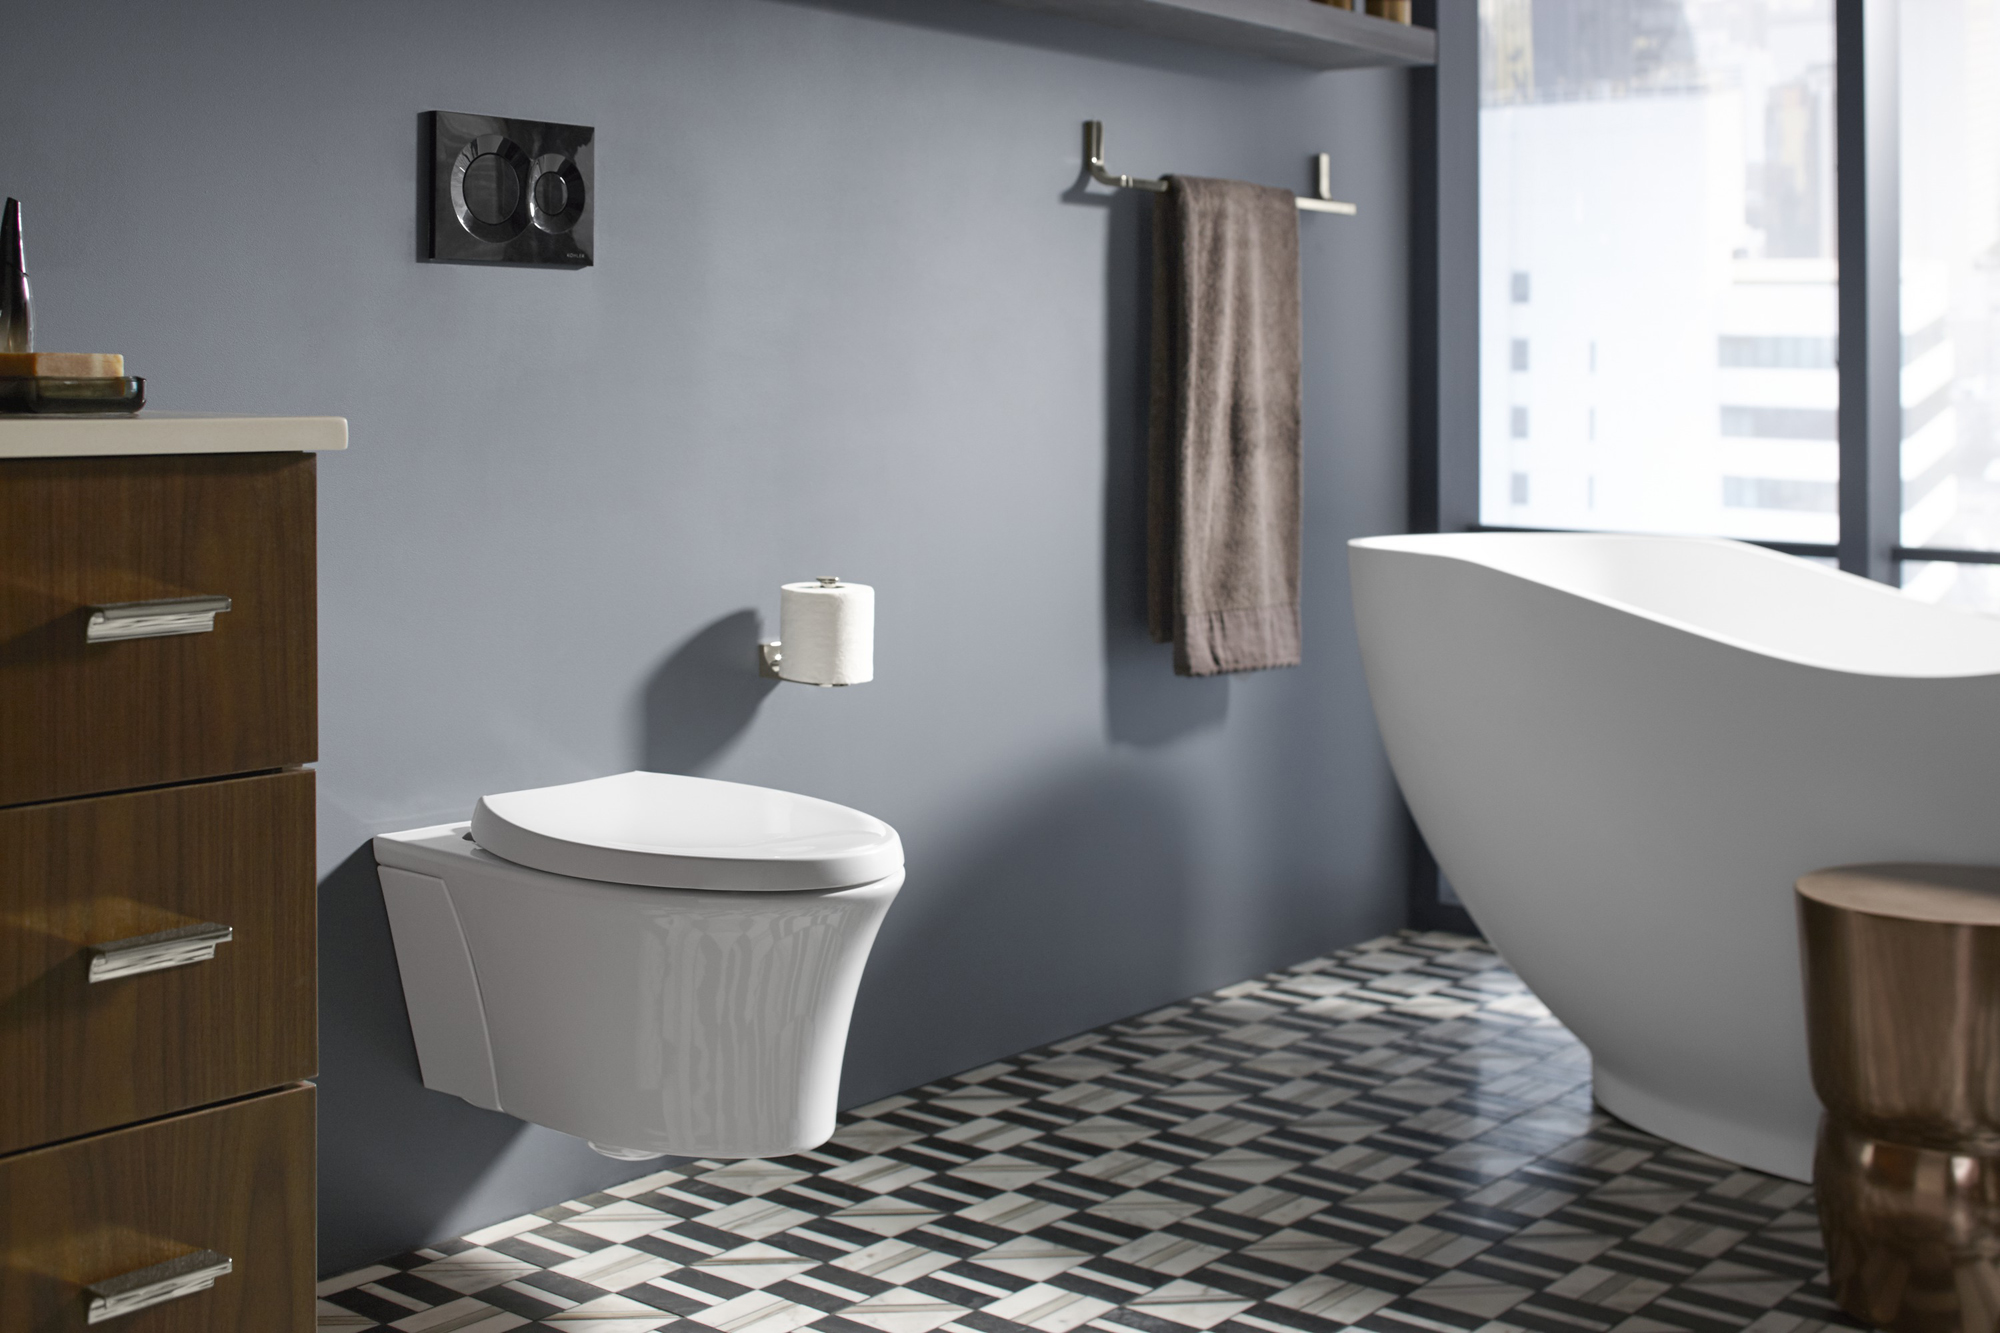 Loure® towel bar   Veil® toilet     A wall-hung toilet makes cleaning the floor easier and makes the space look more open.